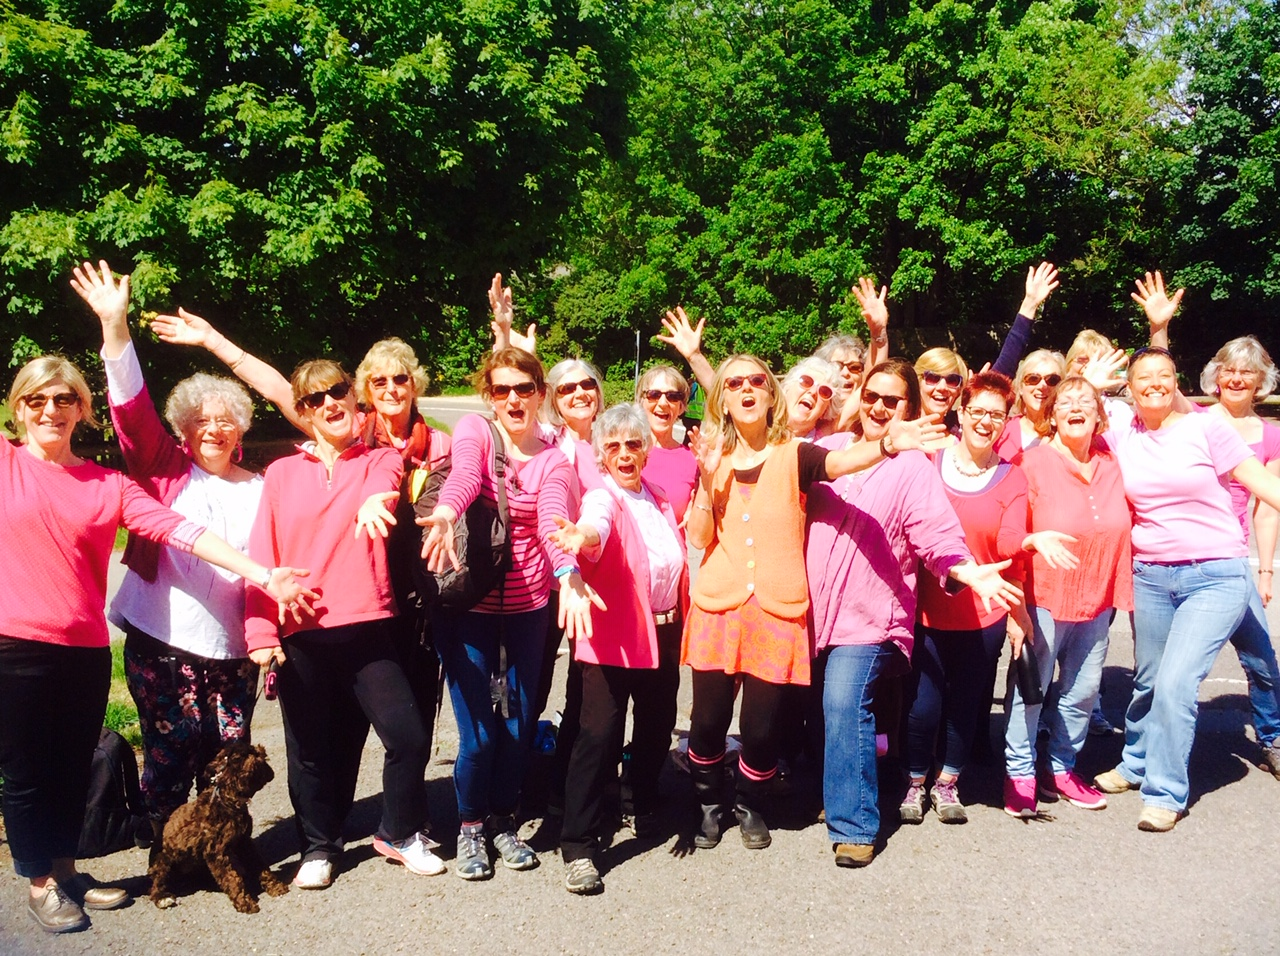 Viva! performing in May at the Race for Life in Kingston Maurward